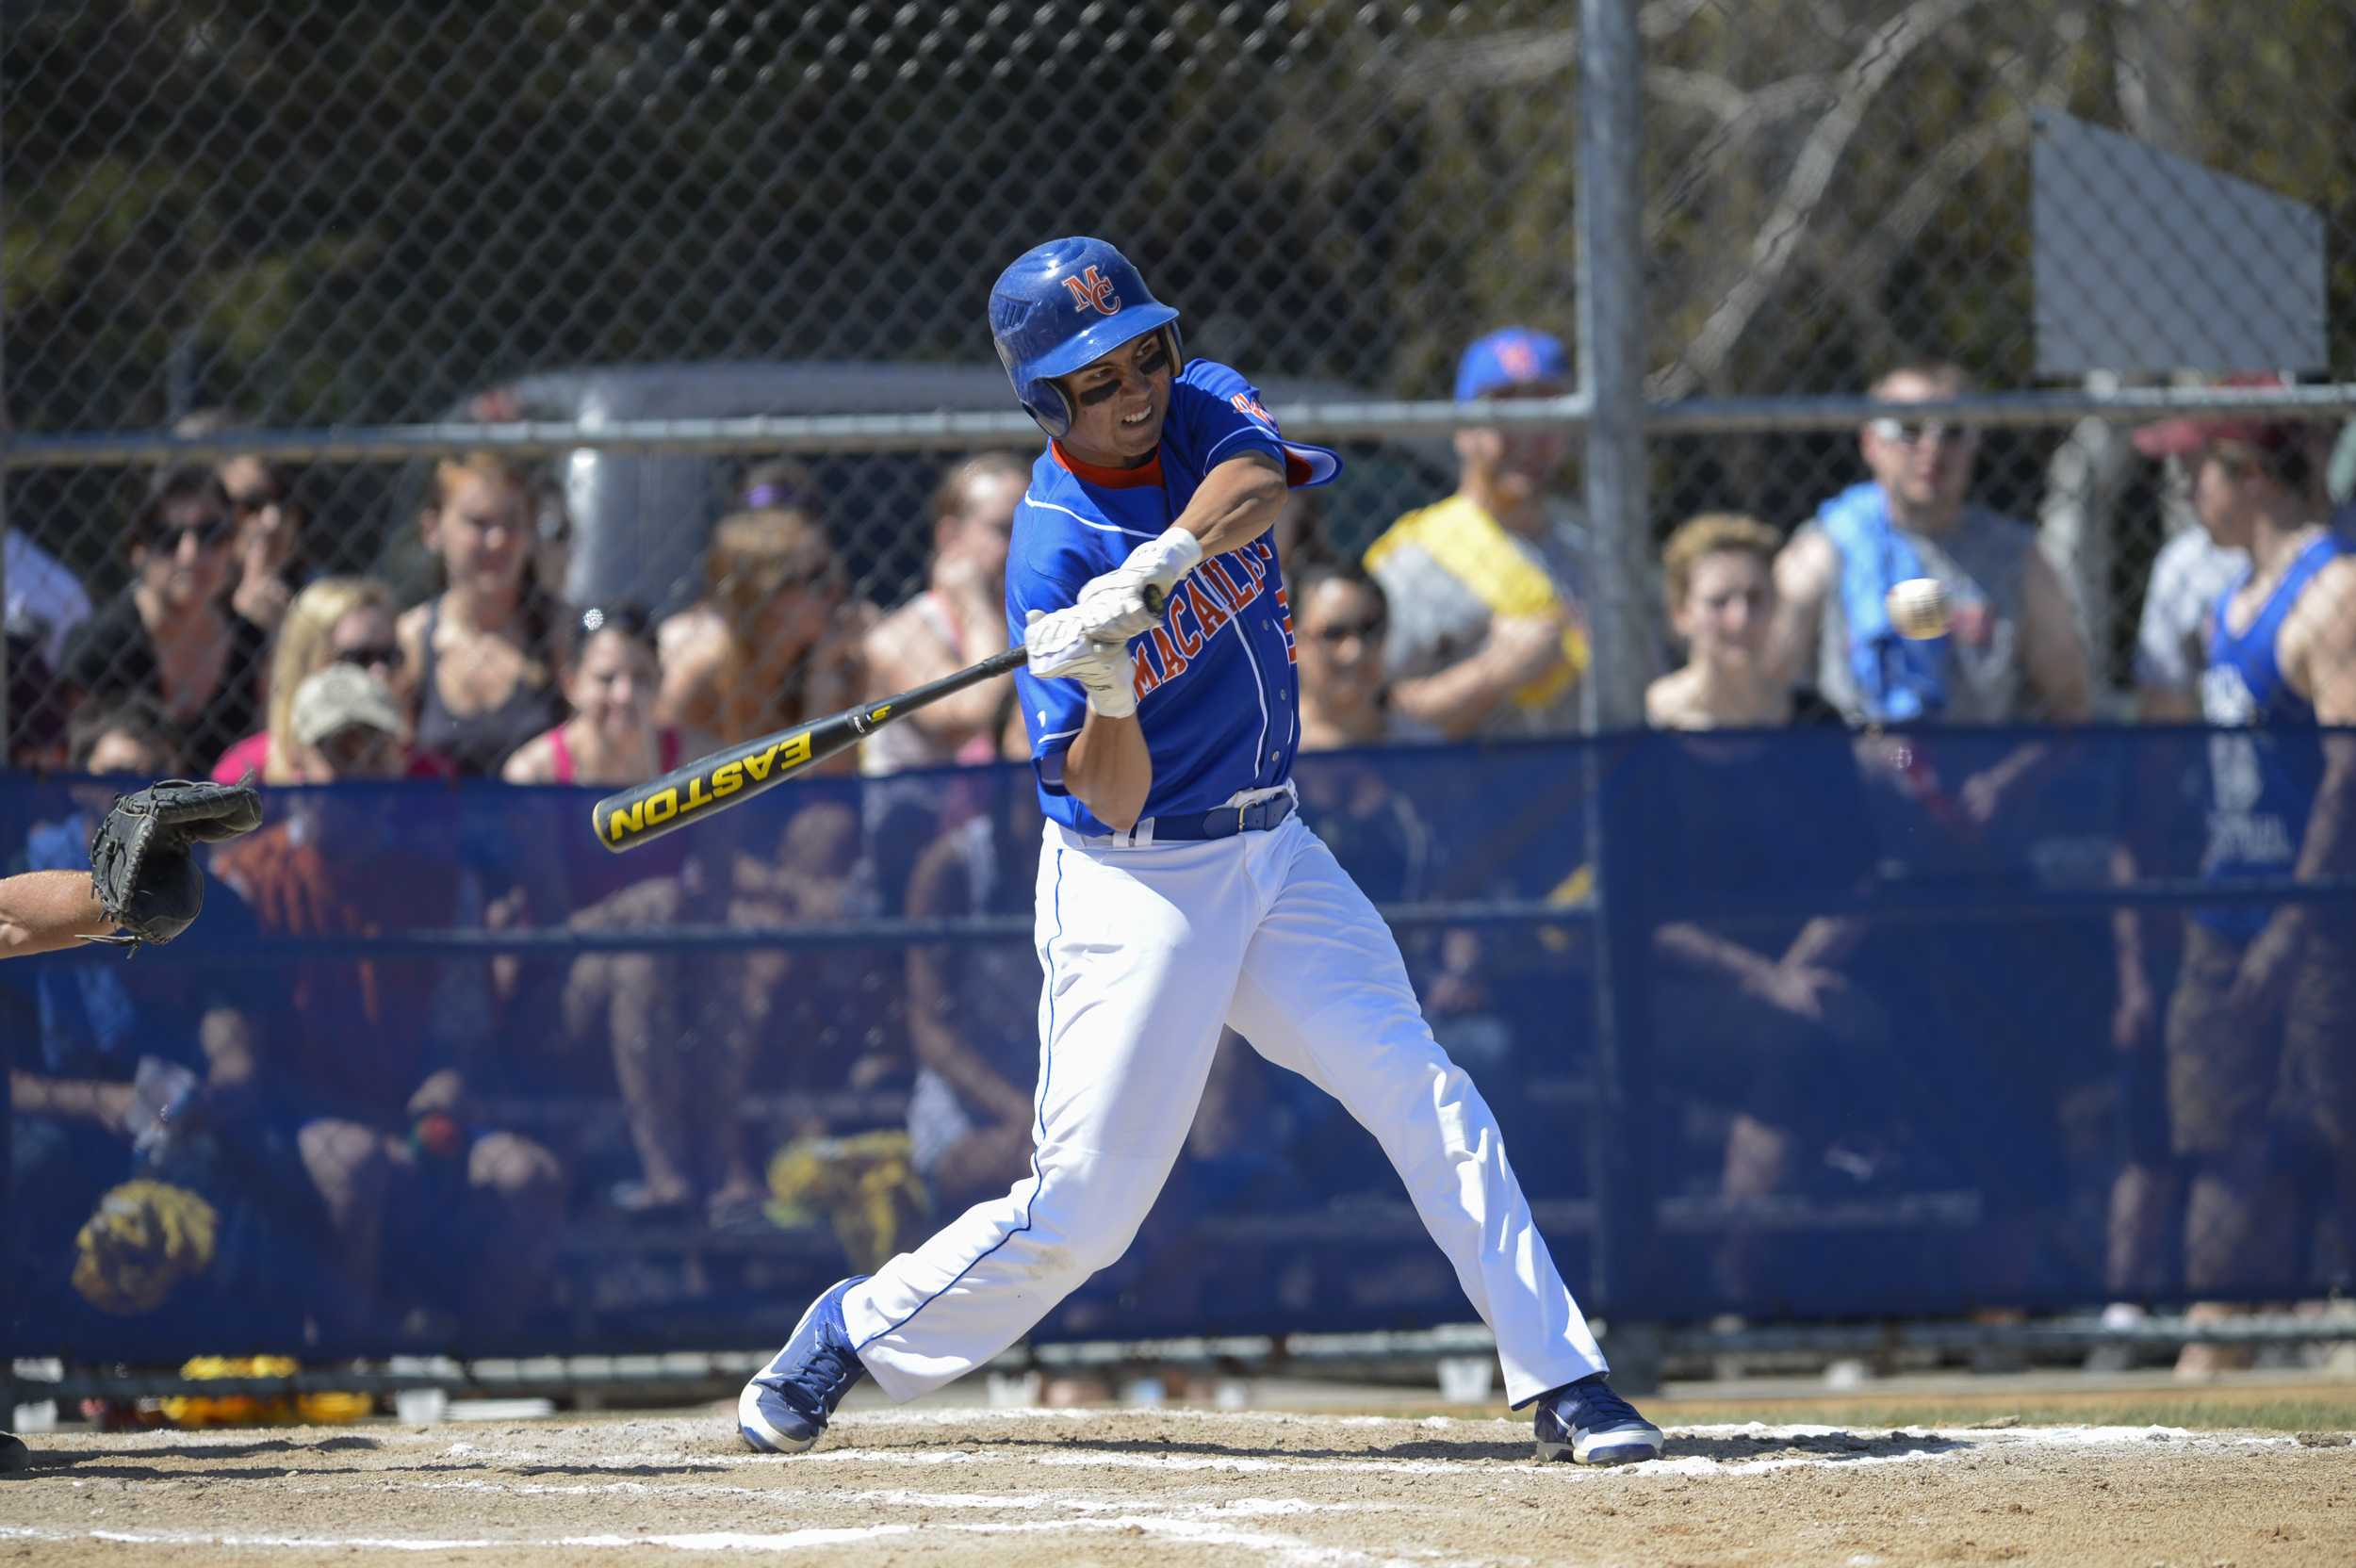 Nick Mar '15 (Sacramento, CA) takes a cut against Hamline last season.  Mar was fifth on the team last year with a .303 batting average as a freshman.  He was the team's opening day cleanup hitter and starting centerfielder against #21 St. Scholastica.  Photo Credit: Christopher Mitchell / SportShotPhoto.com